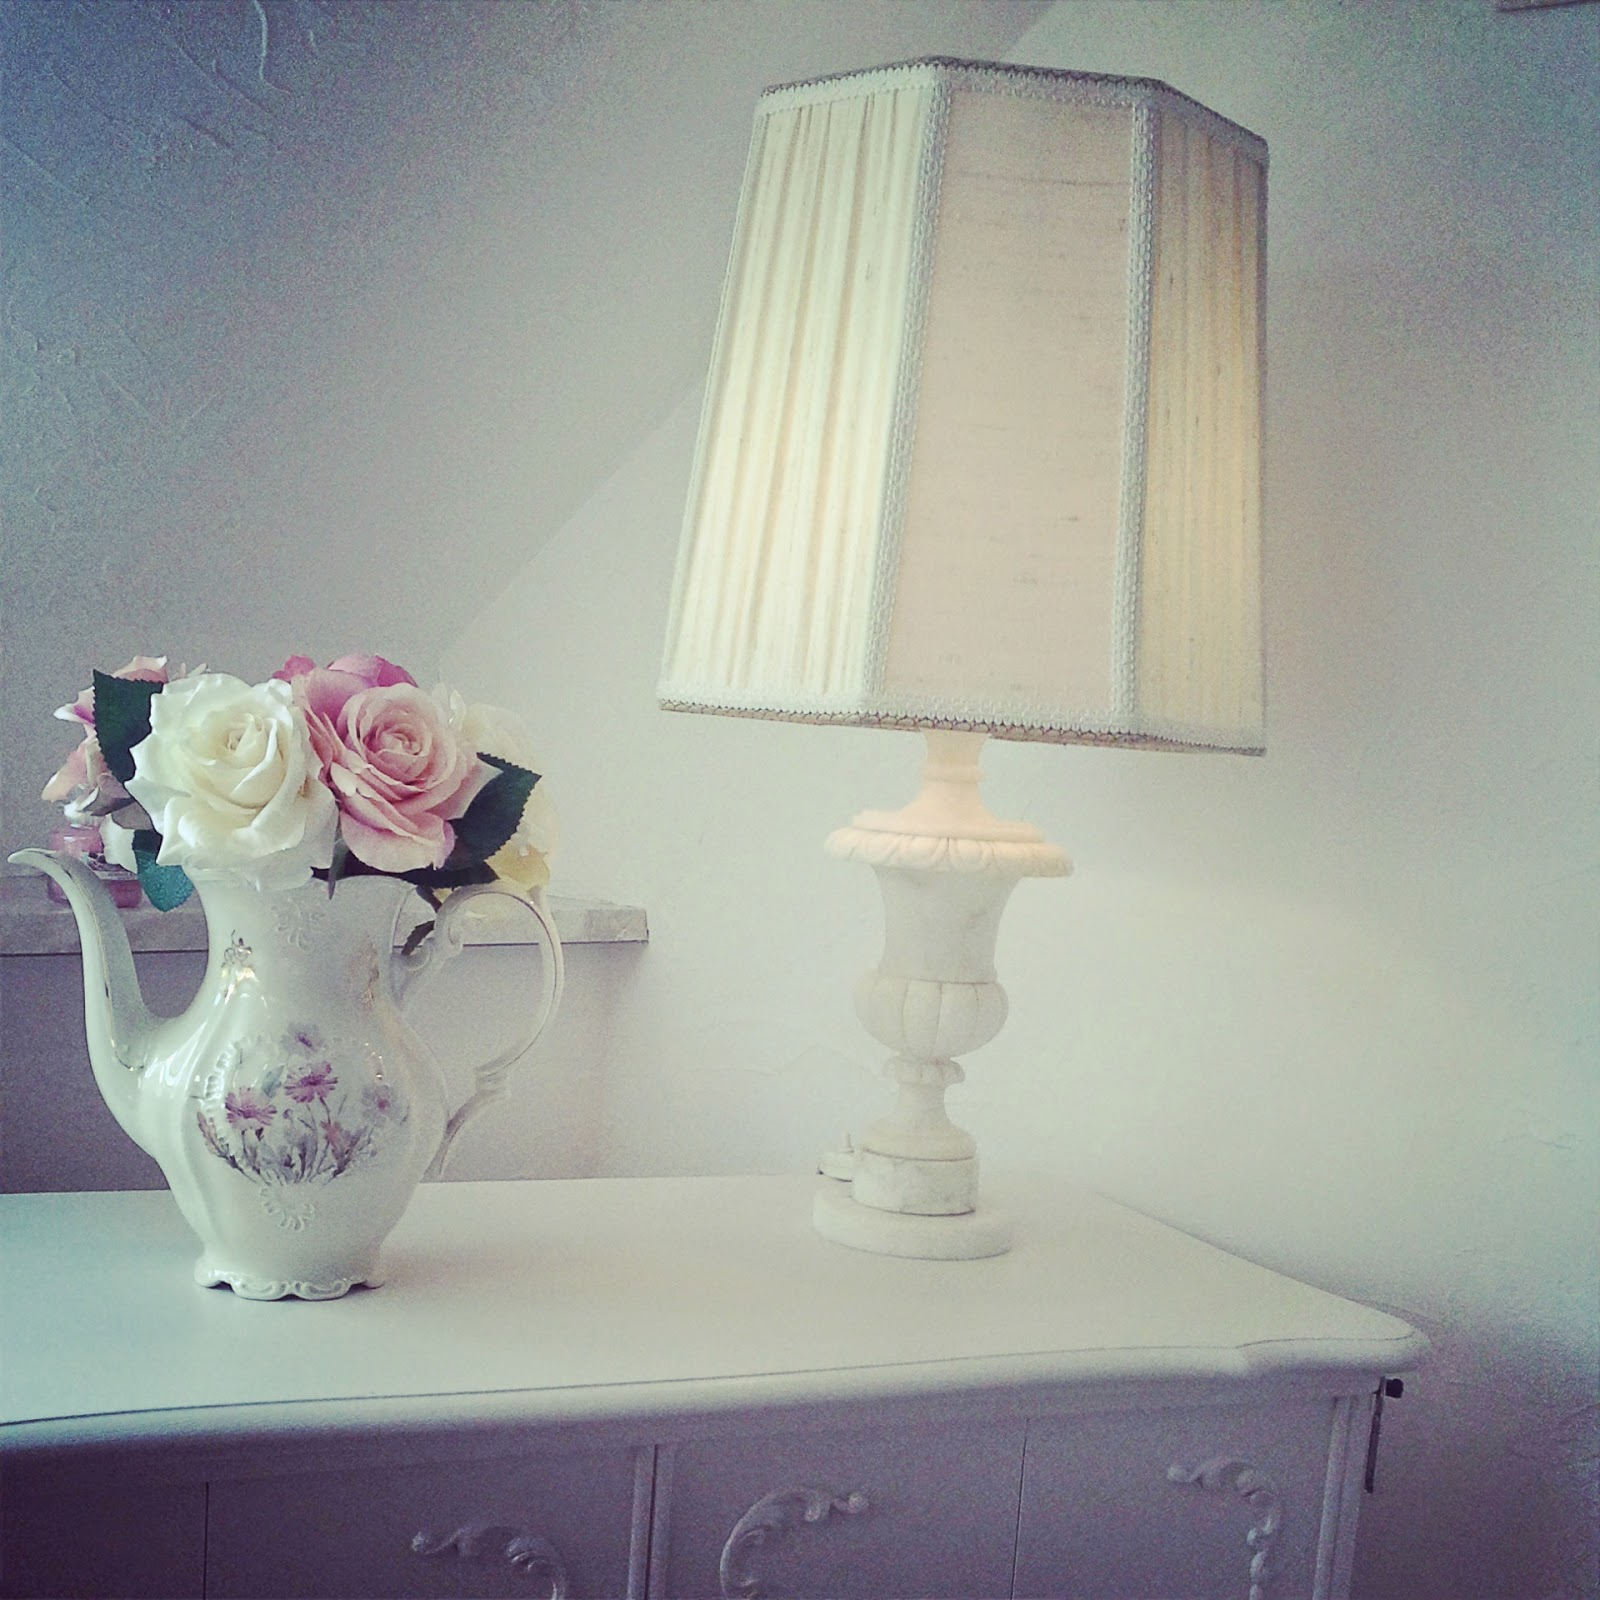 Lampe Schlafzimmer Shabby Shabby Chic Liebhaber Florentiner Kommode And Lampe